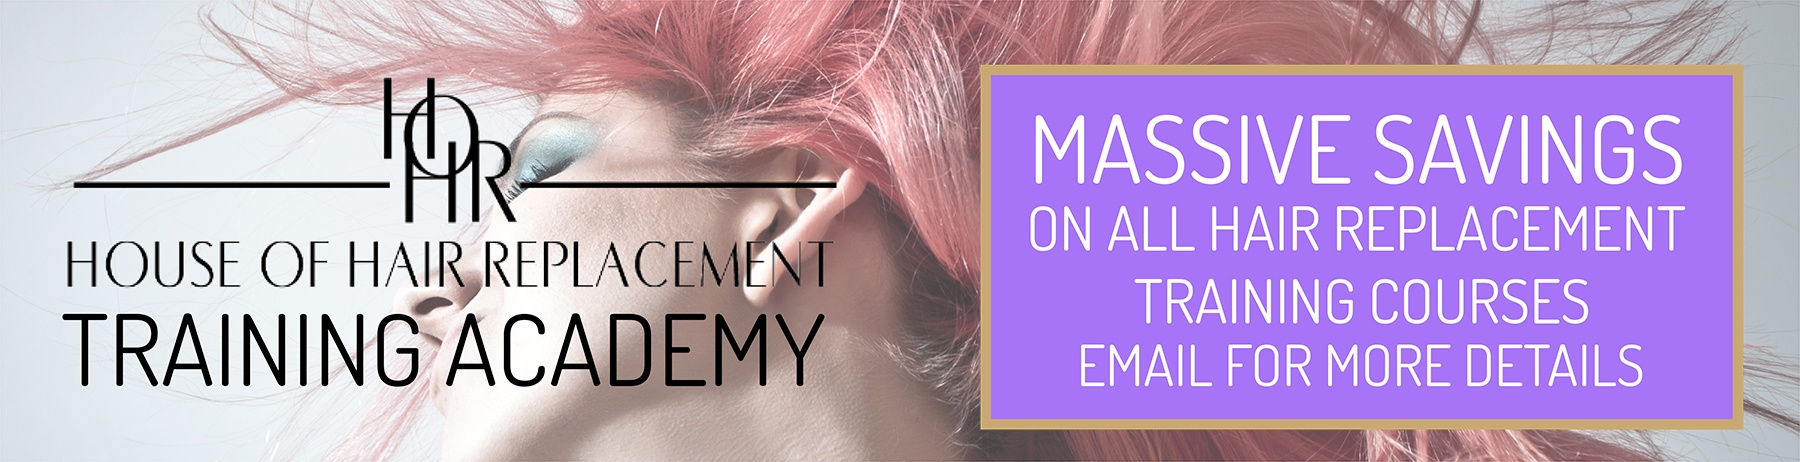 Savings on hair replacement training courses